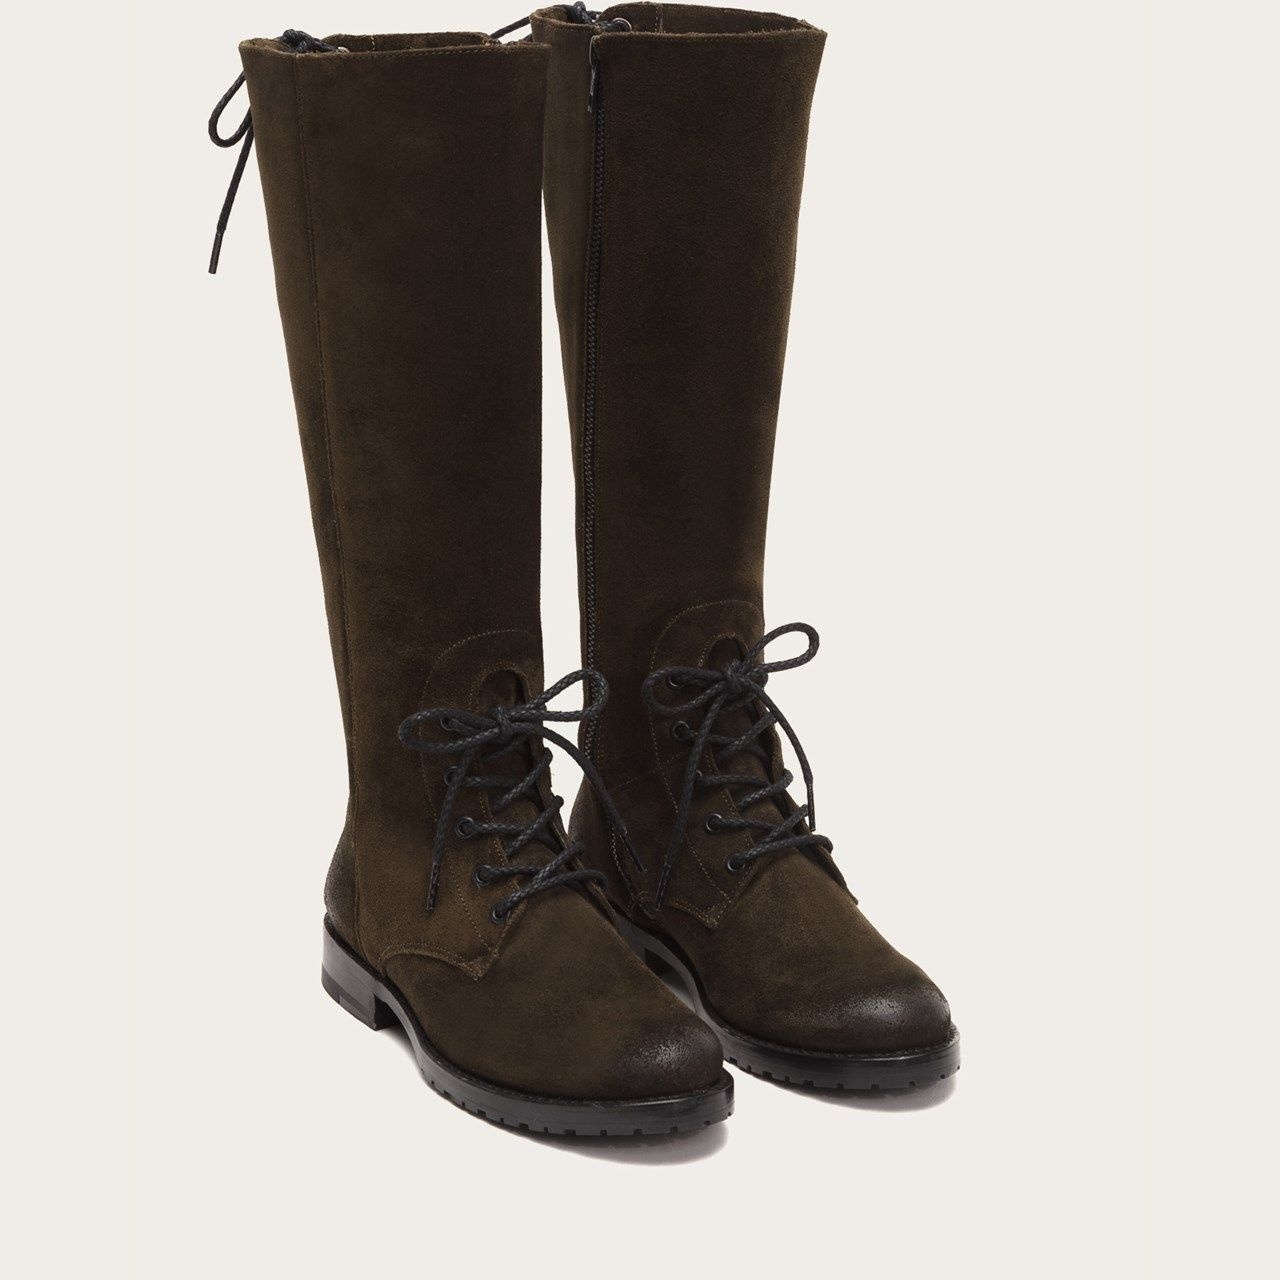 78e8ceed1a9 Natalie Combat Tall Boots | FRYE Since 1863 | Style. | Tall boots ...